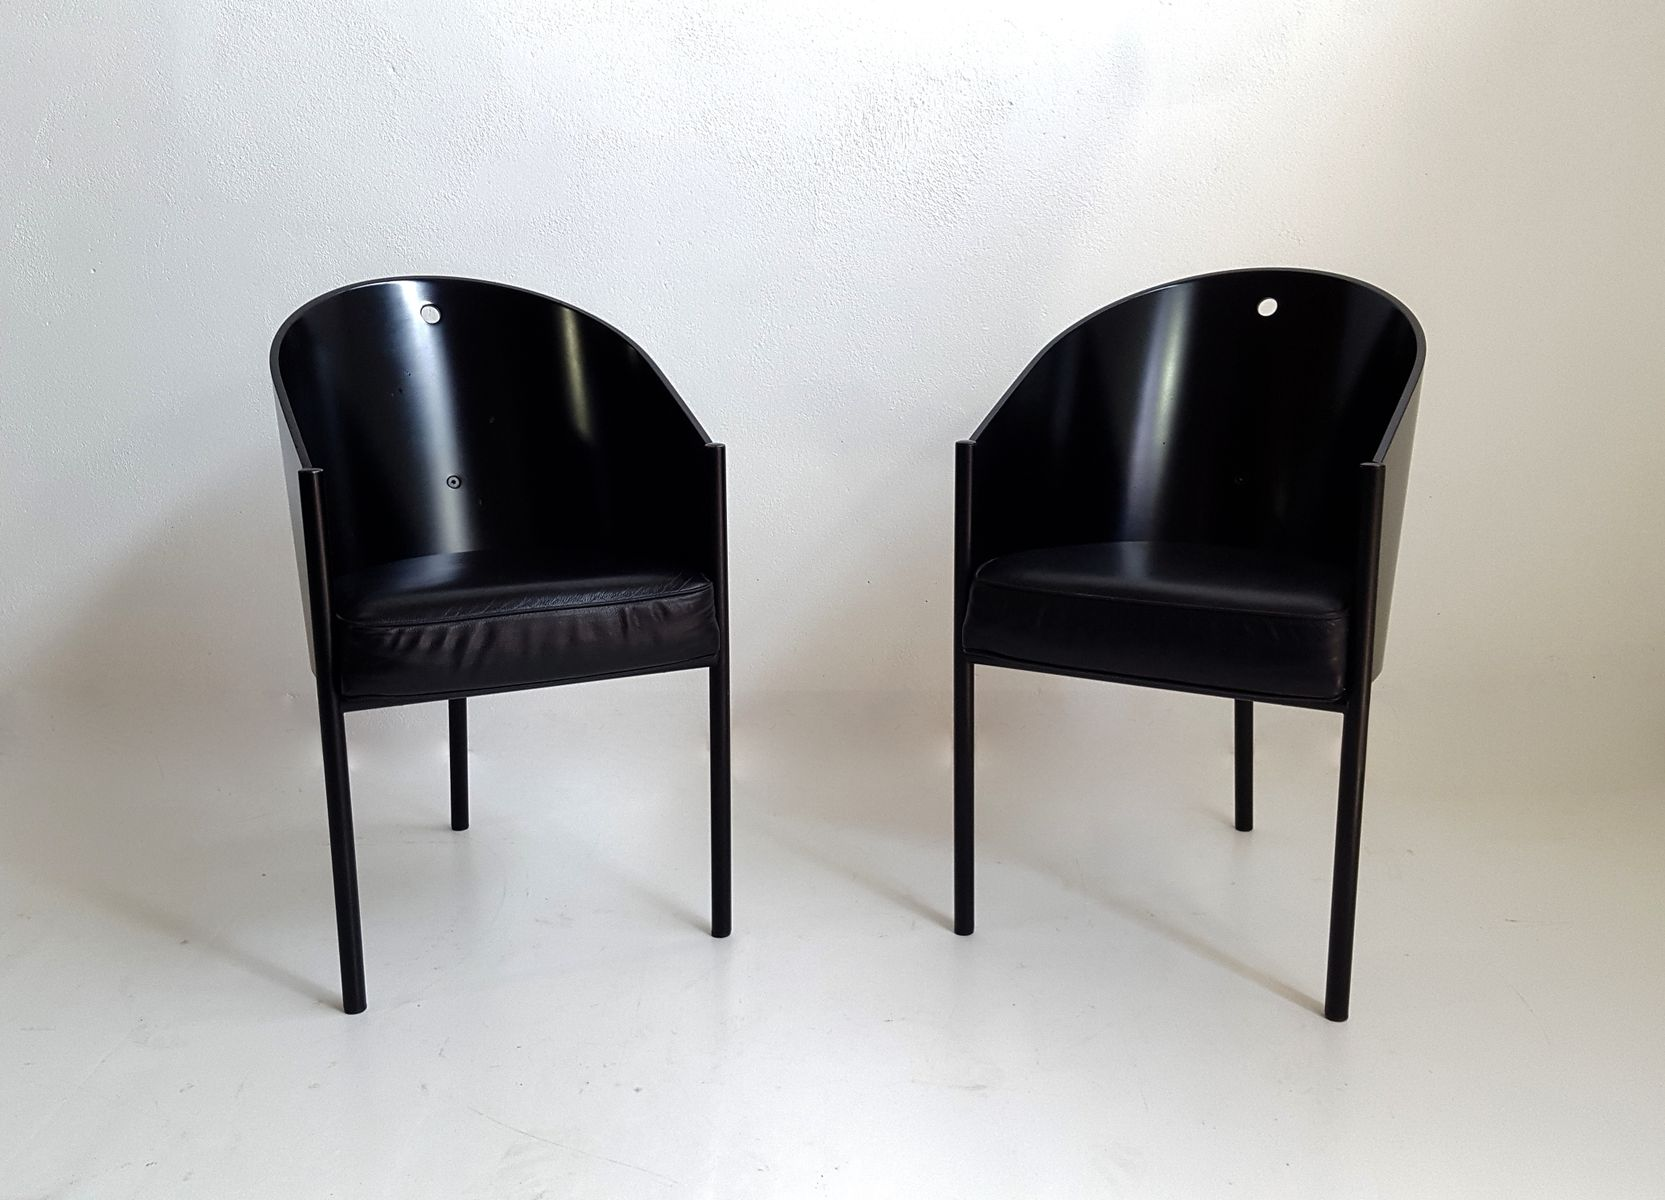 Costes chair by philippe starck for driade 1980s for sale for 1980s chair